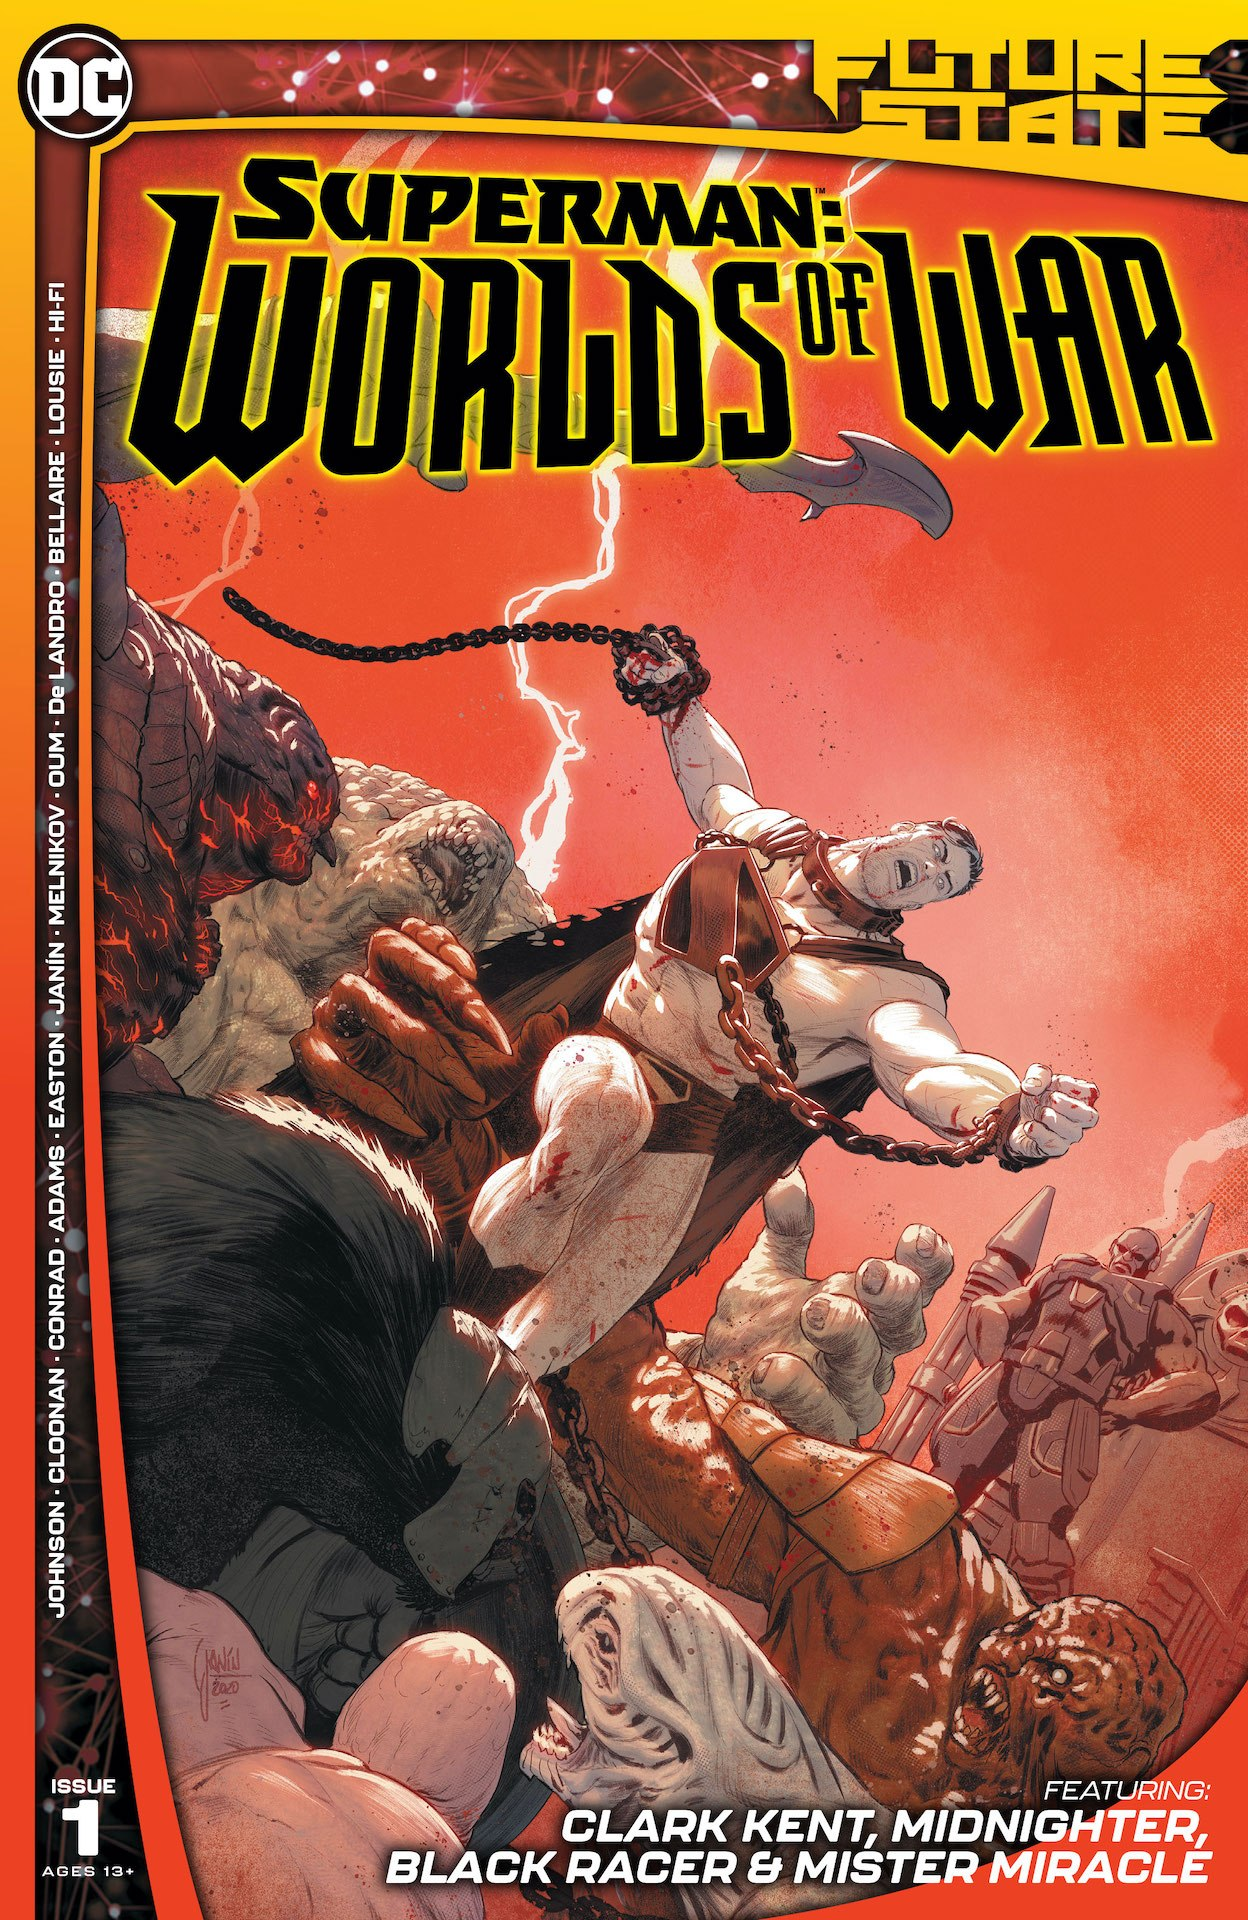 Future State: Superman: Worlds of War #1 preview